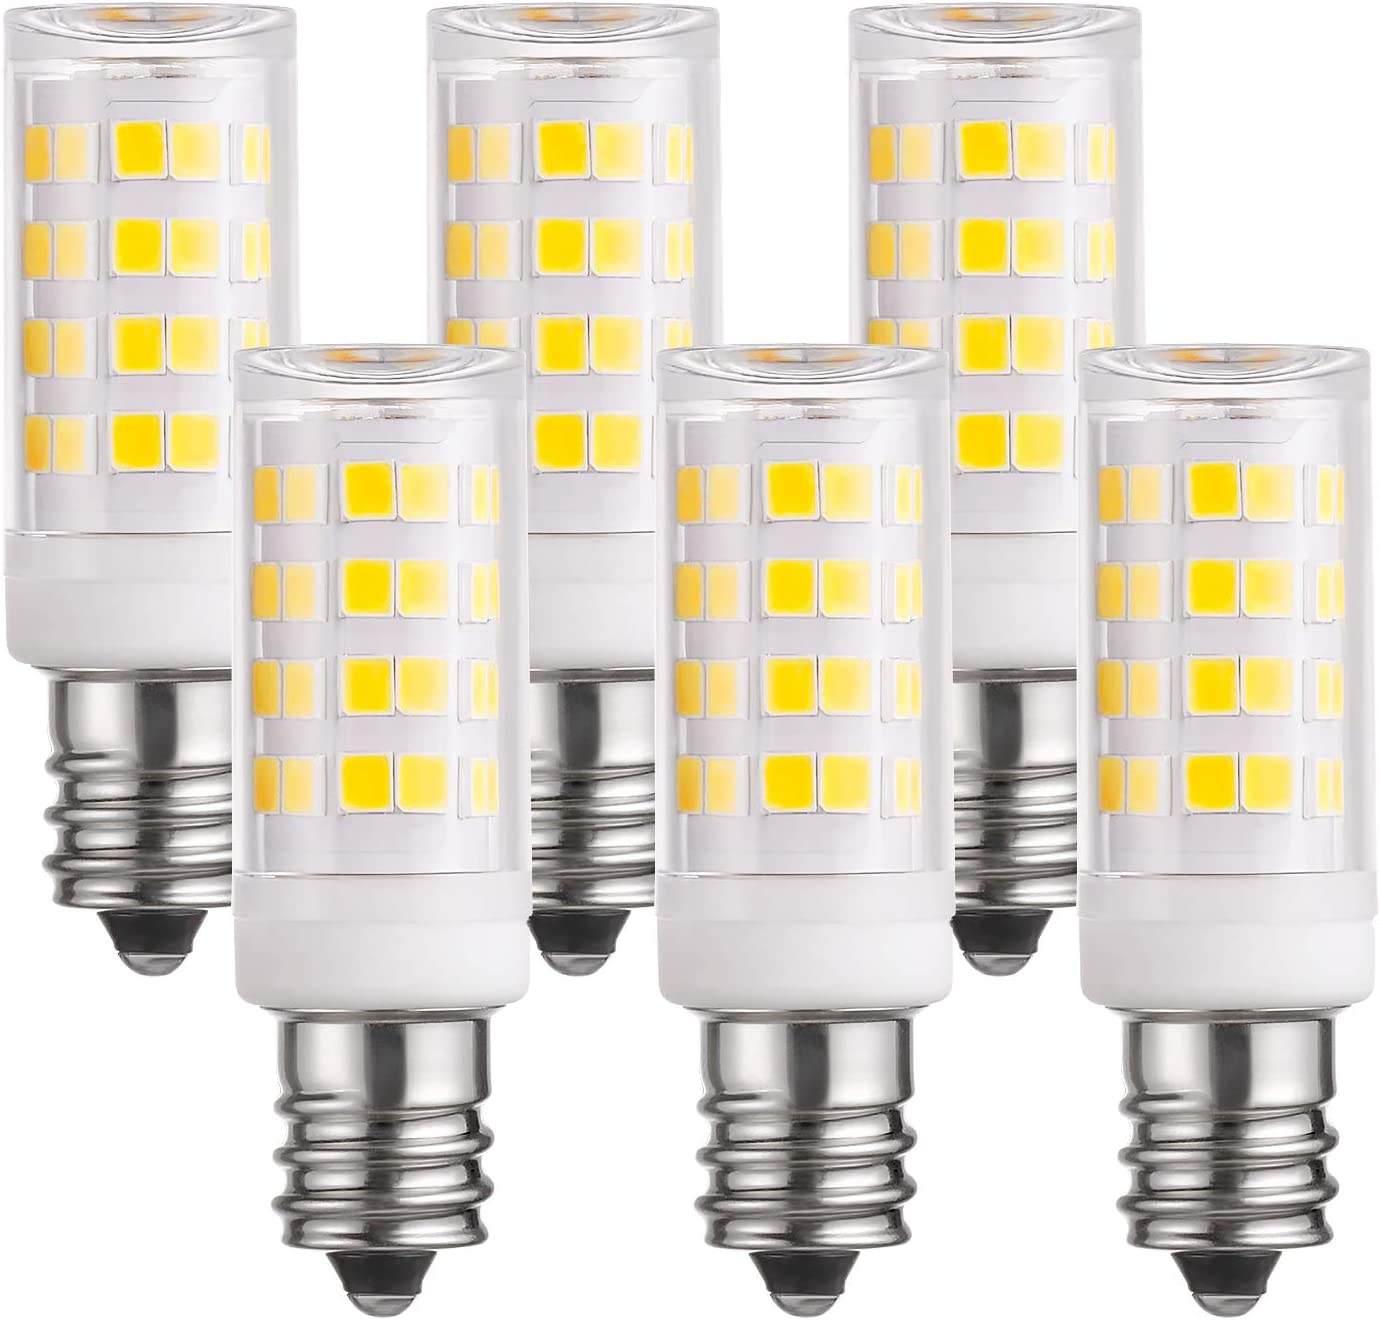 TORCHSTAR E12 Candelabra LED Bulb, 3W (30W Eqv.), Surge Protection, 380lm, 3000K Warm White, 360° All-Round Beam Angle Bulb for Ceiling Fan Lights, Chandeliers, Pack of 6, Generation 1